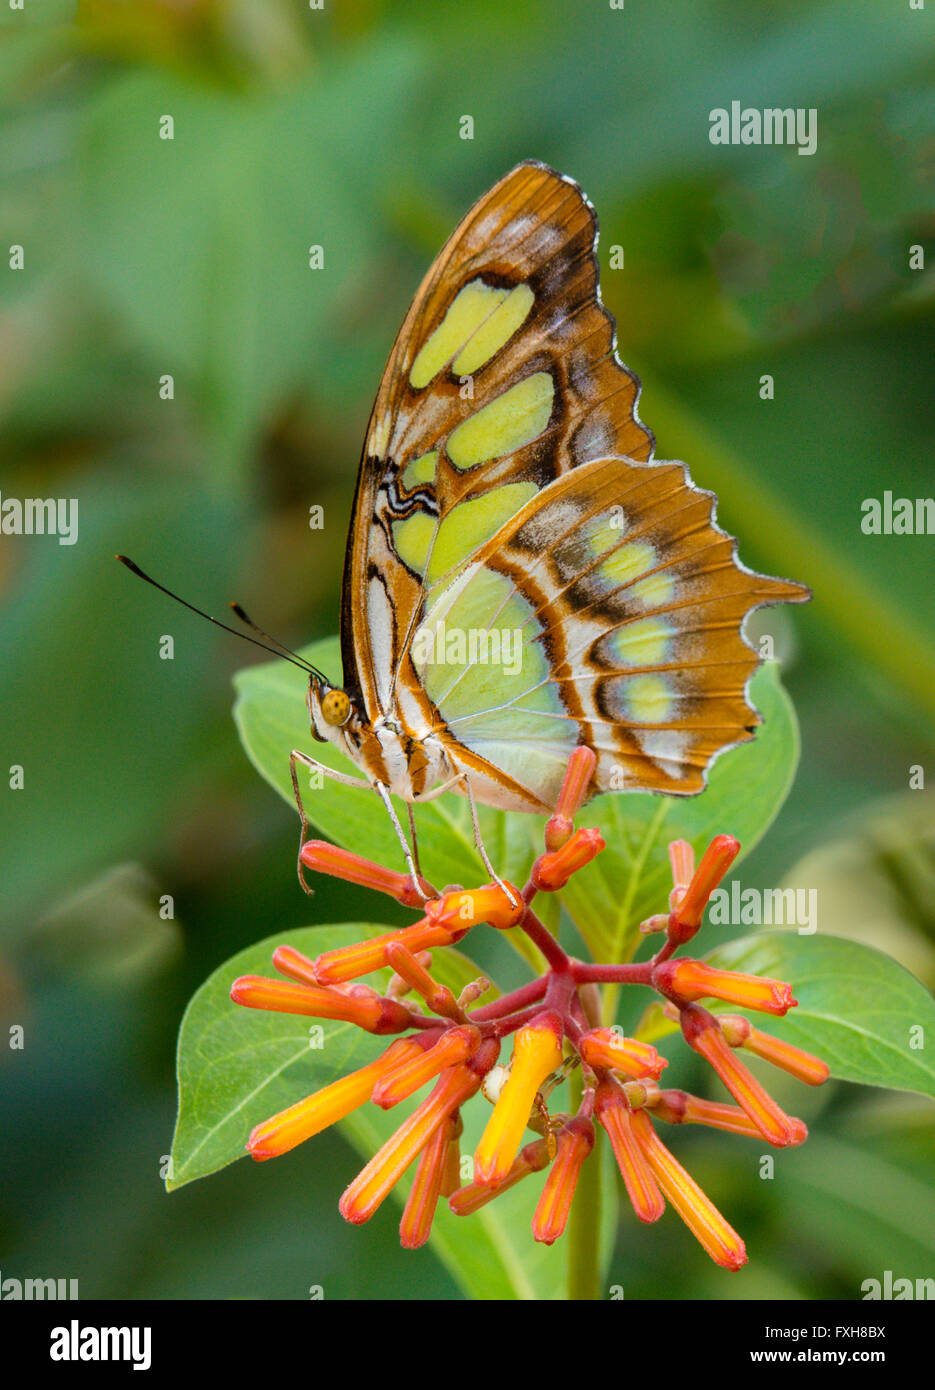 Malachite Siproeta stelenes butterfly taken at Butterfly Estates in Fort Myers Flkorida - Stock Image